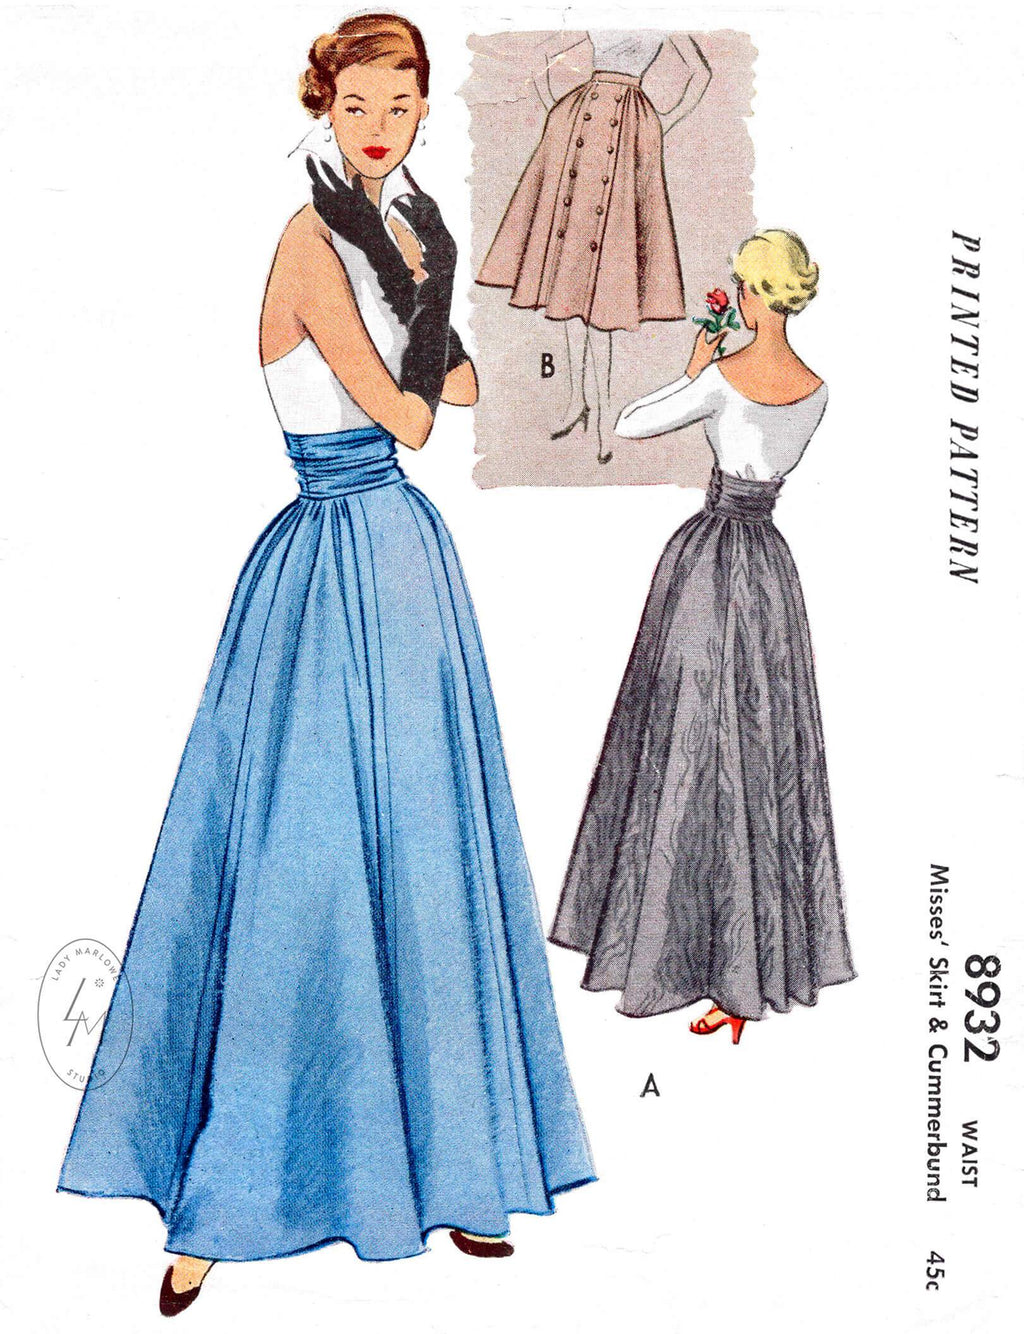 1950s 1952 day or evening skirt McCall's 8932 cinched cummerbund waist full skirt vintage sewing pattern reproduction